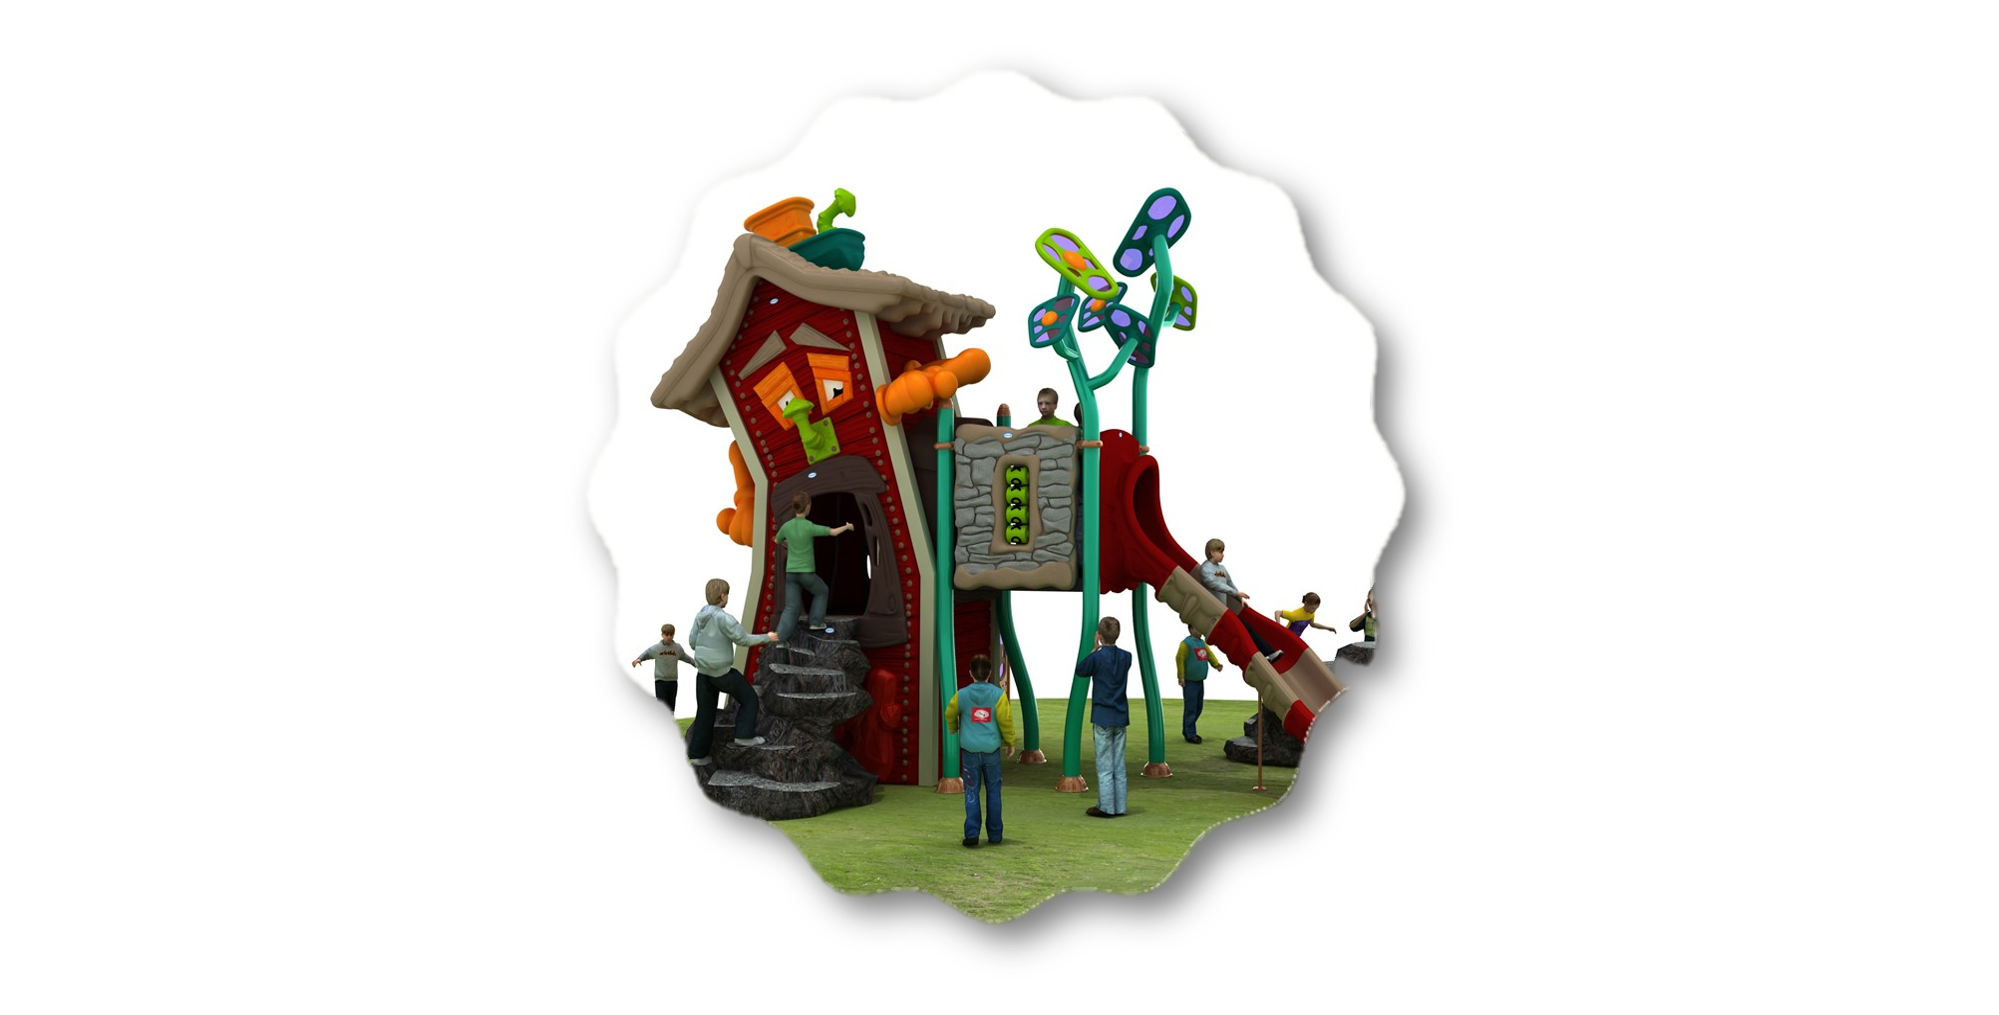 Park clipart outside playground. Home green air equipment